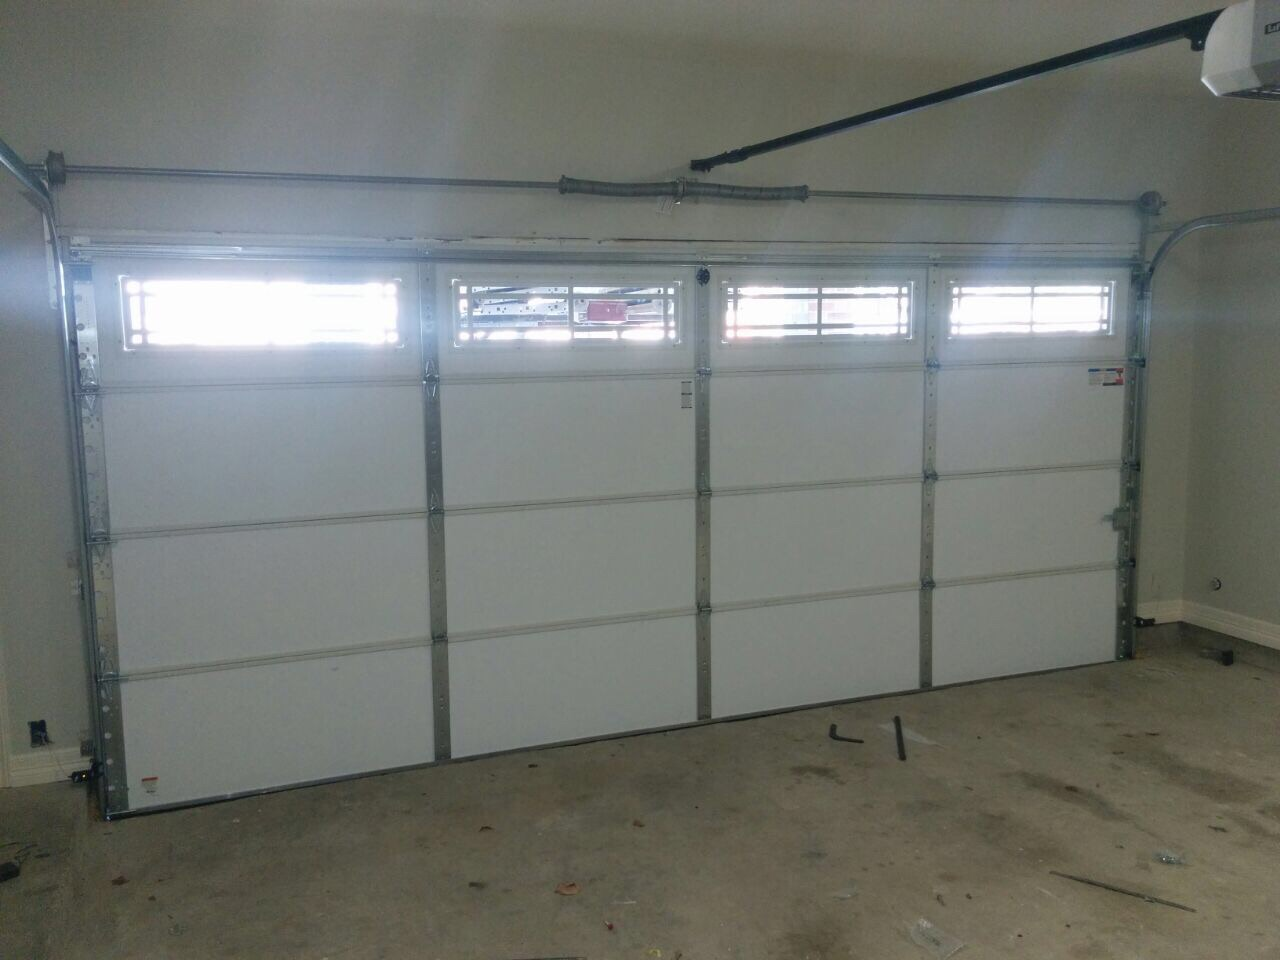 electric garage doorElectric  Garage Door Repair Fort Lauderdale FL